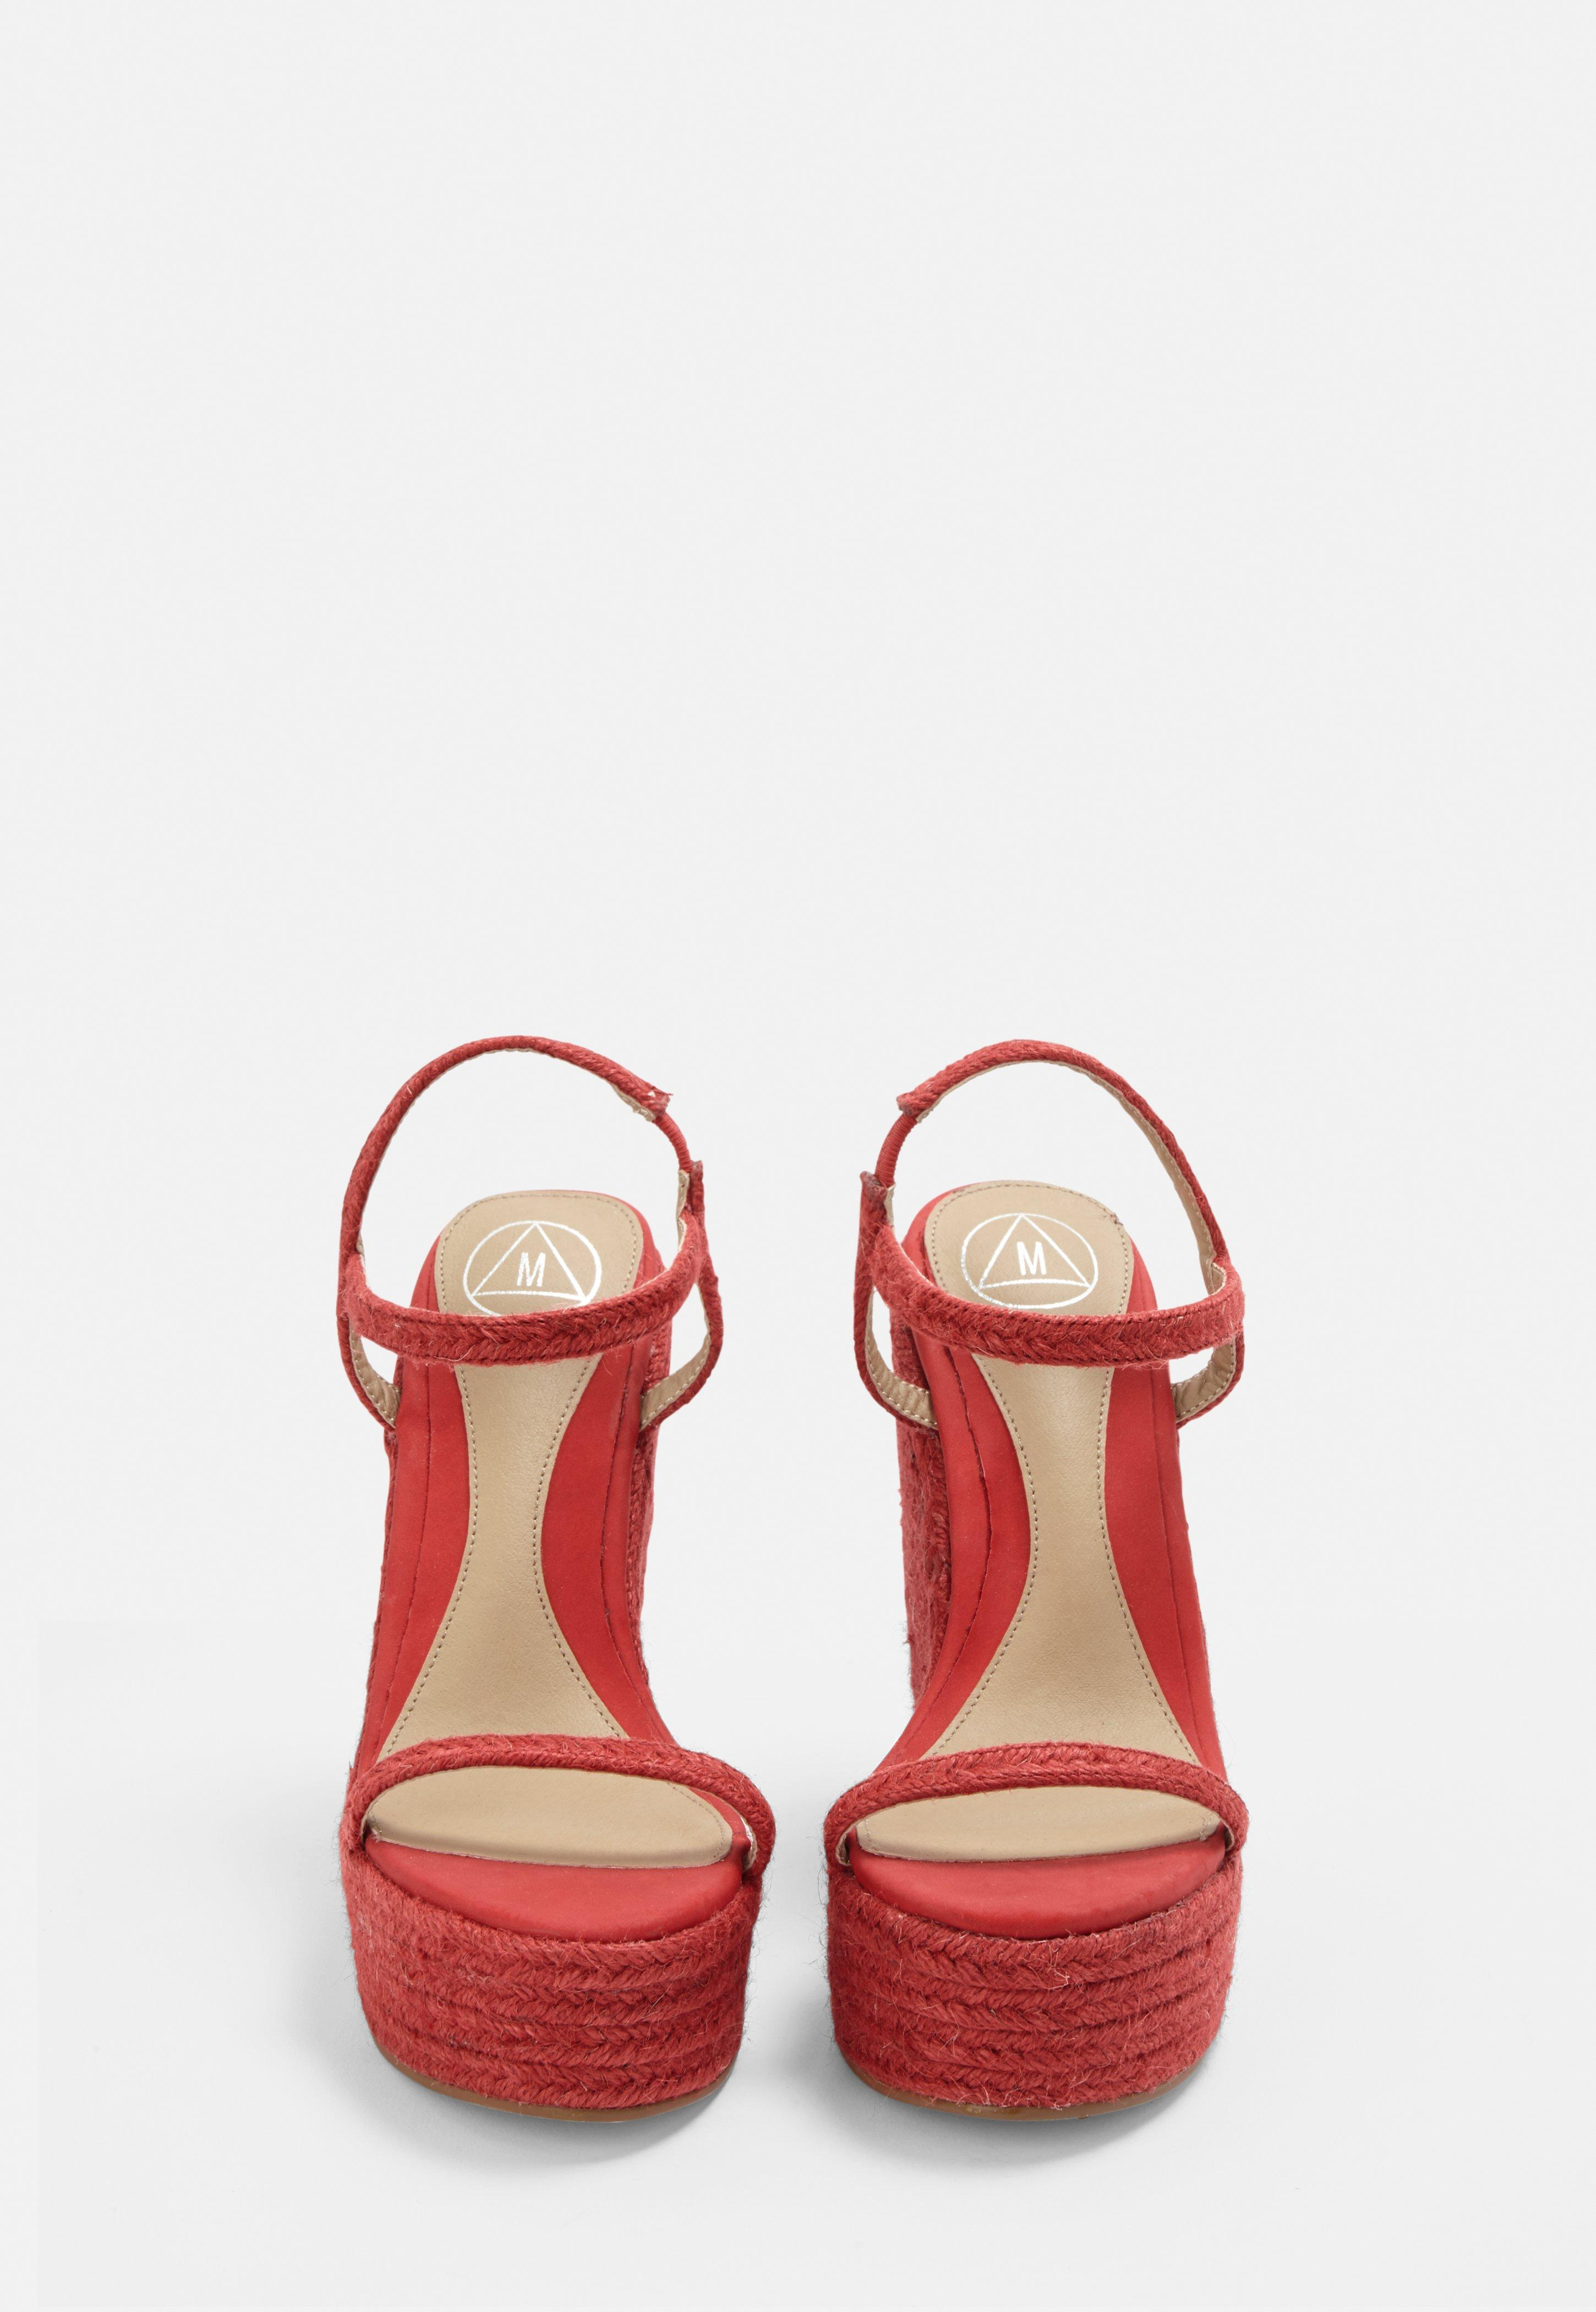 2bc843a40e78 Missguided - Red Two Strap Jute Wedges - Lyst. View fullscreen